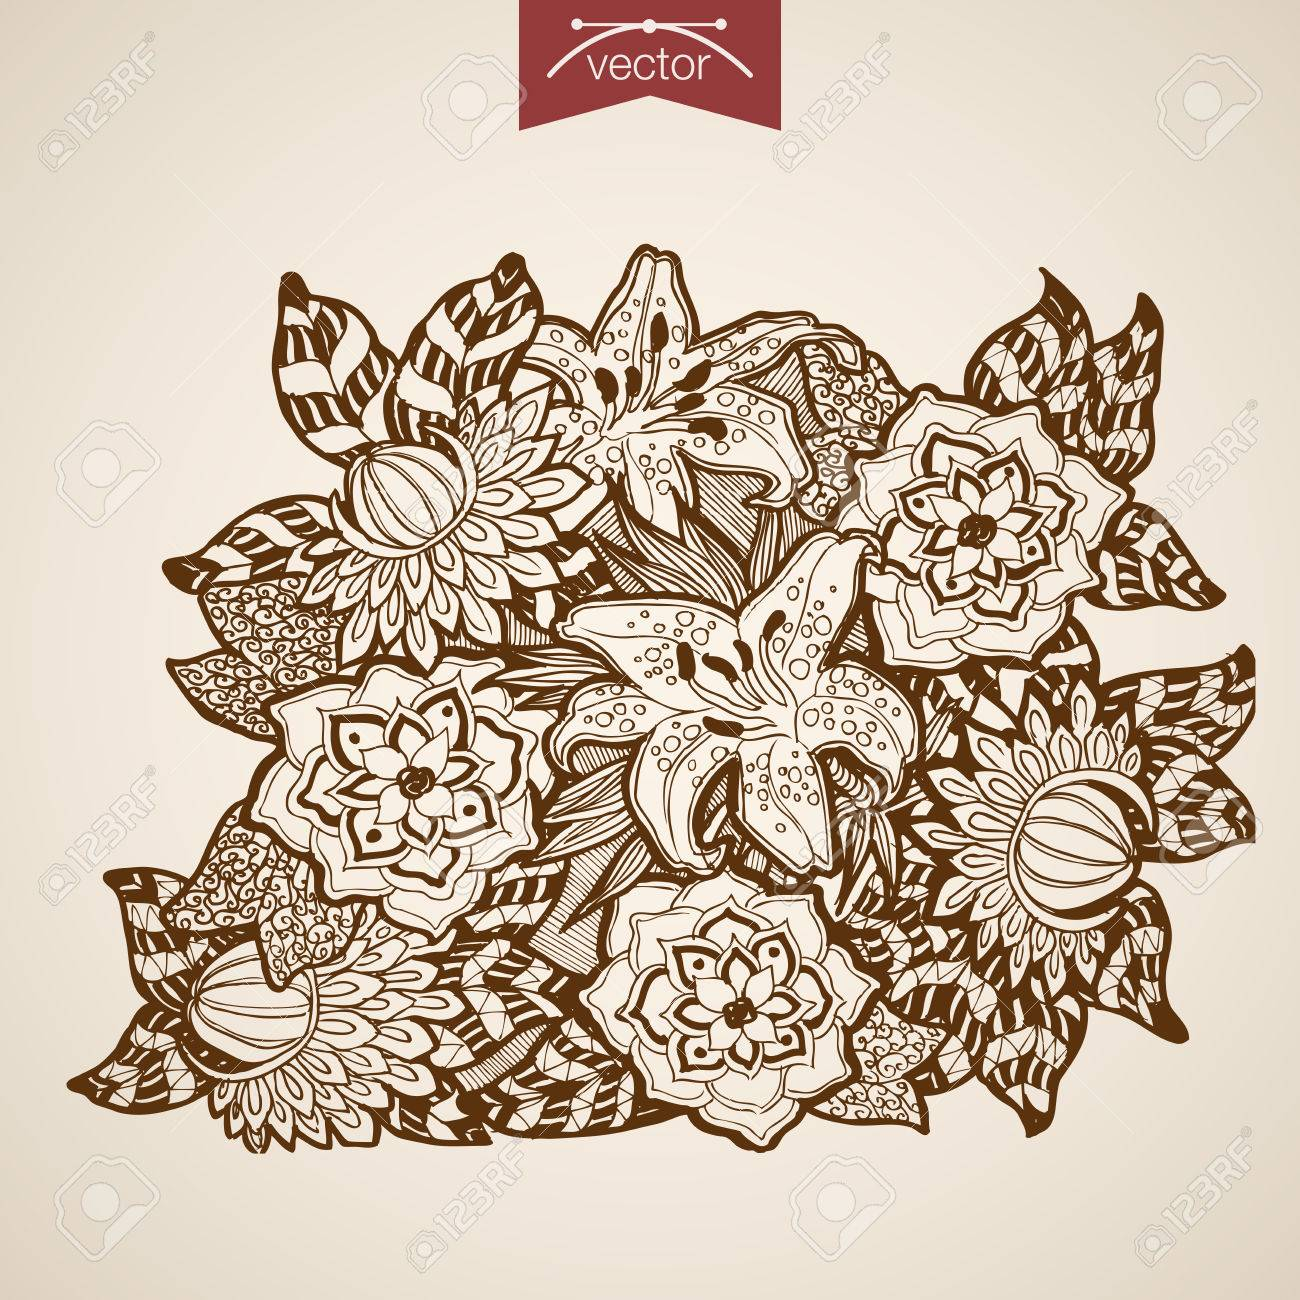 Engraving vintage hand drawn vector flower bouquet pencil sketch lilies floristic shop illustration stock